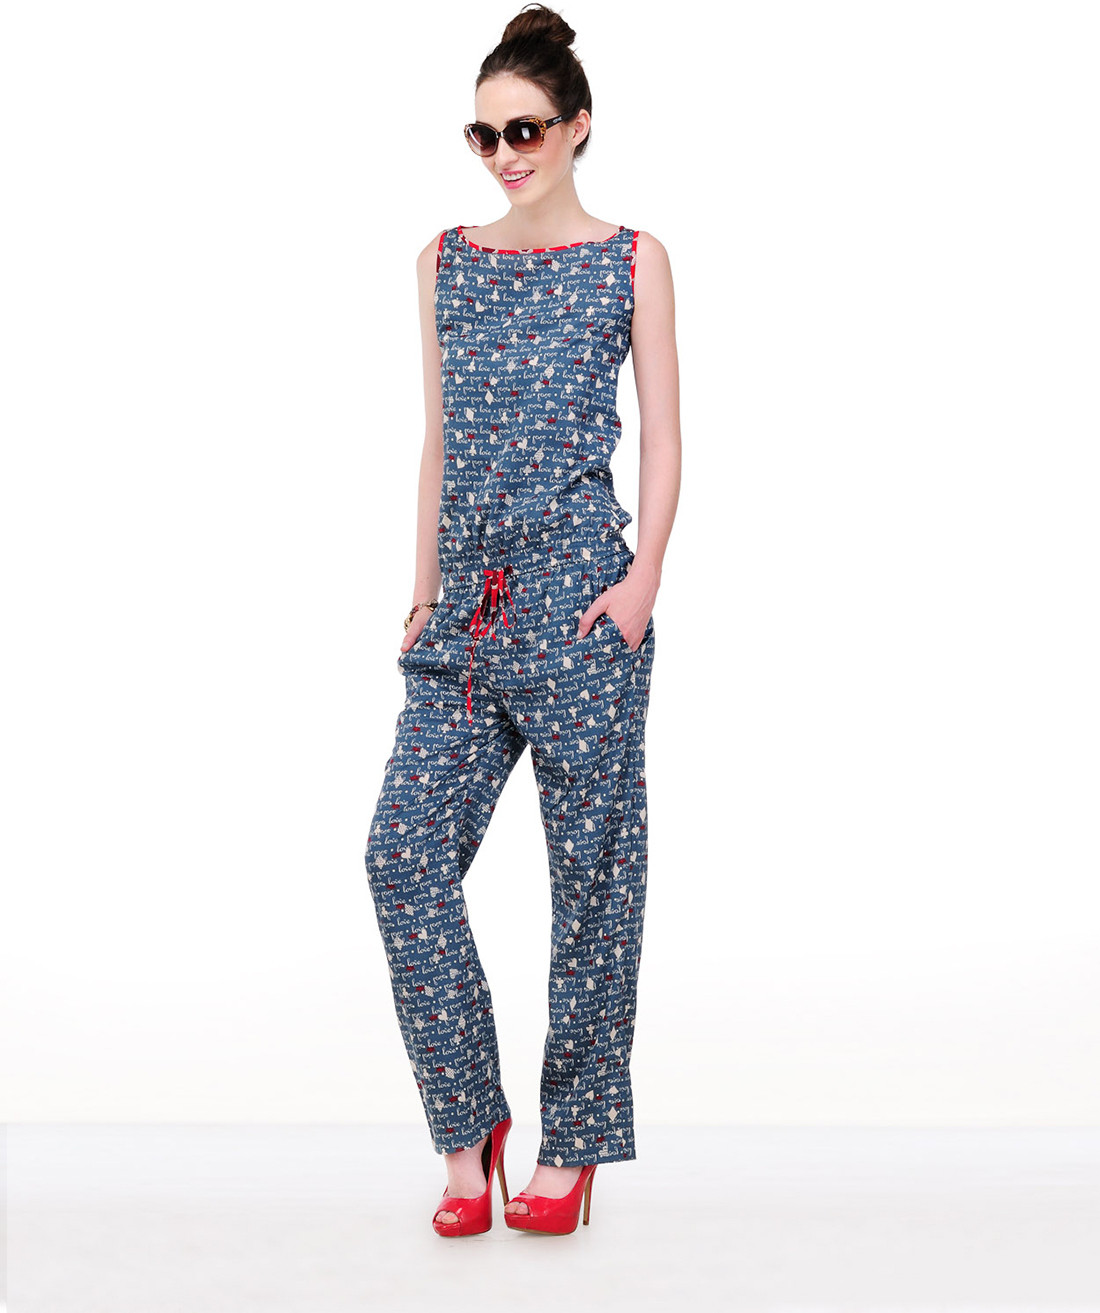 Buy JumpSuits For Women, Rompers for Women Online in India. Shop Latest Collection of Ladies Jumpsuits at archivesnapug.cf Free Shipping 7 Days Return Cash on.